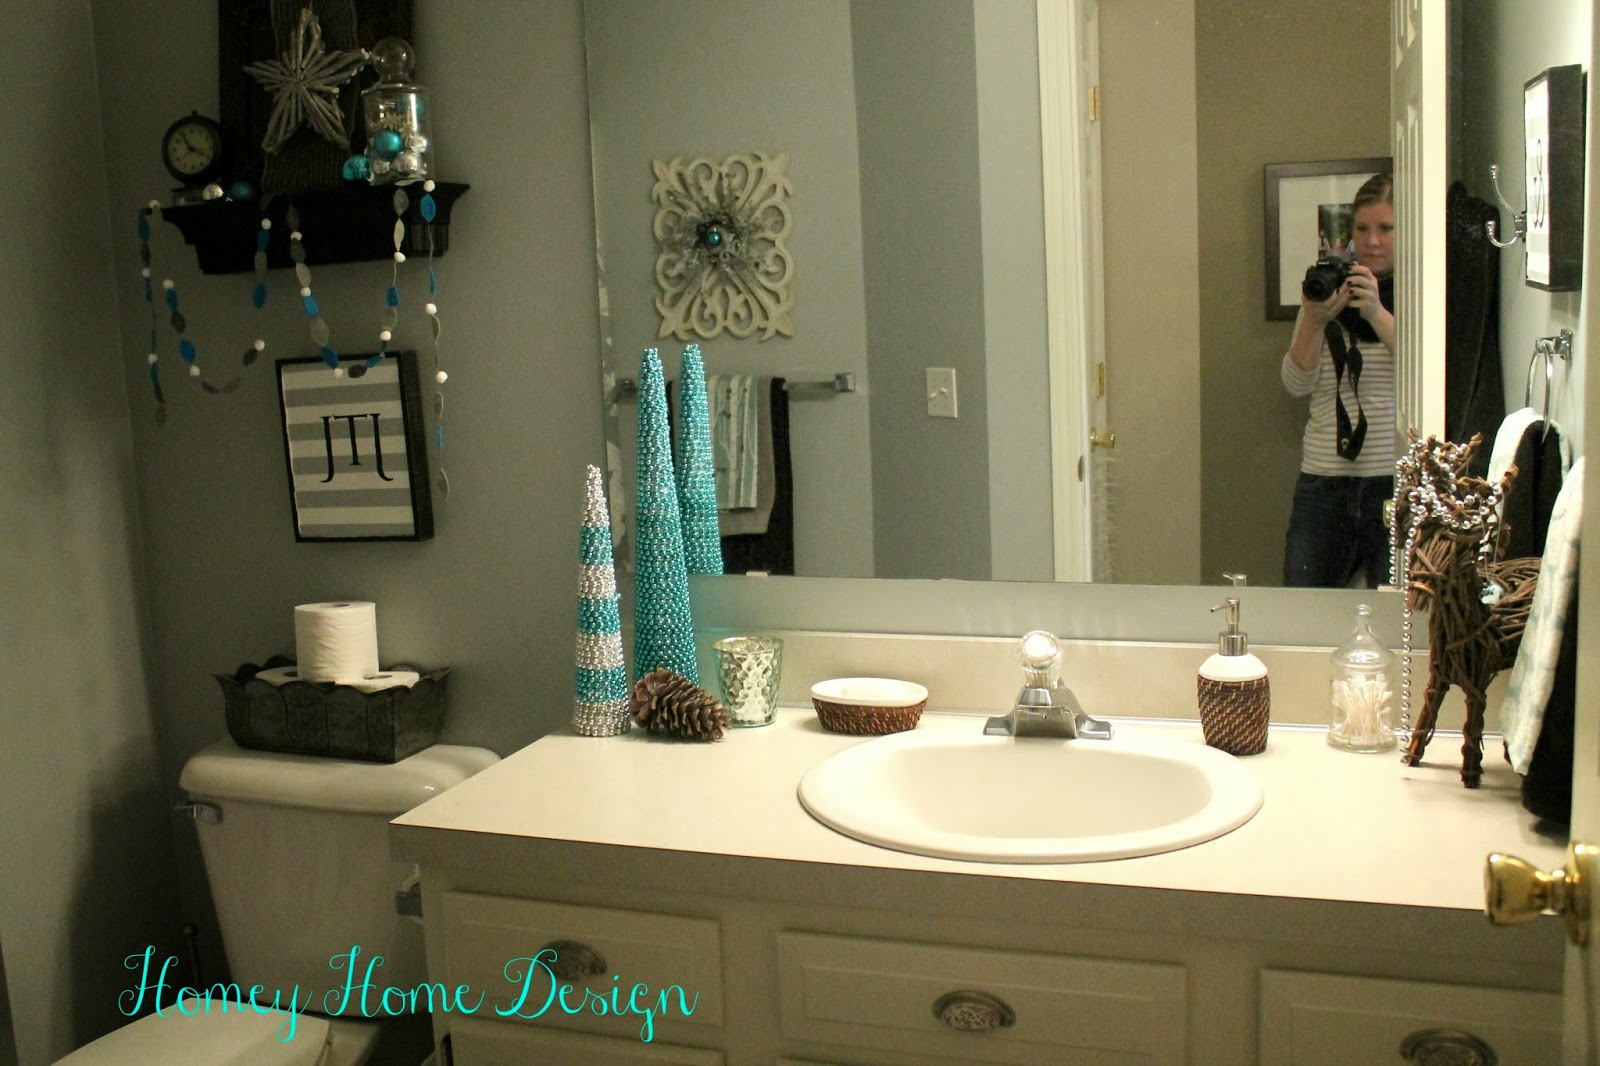 Homey home design bathroom christmas ideas for Small bathroom decorating themes